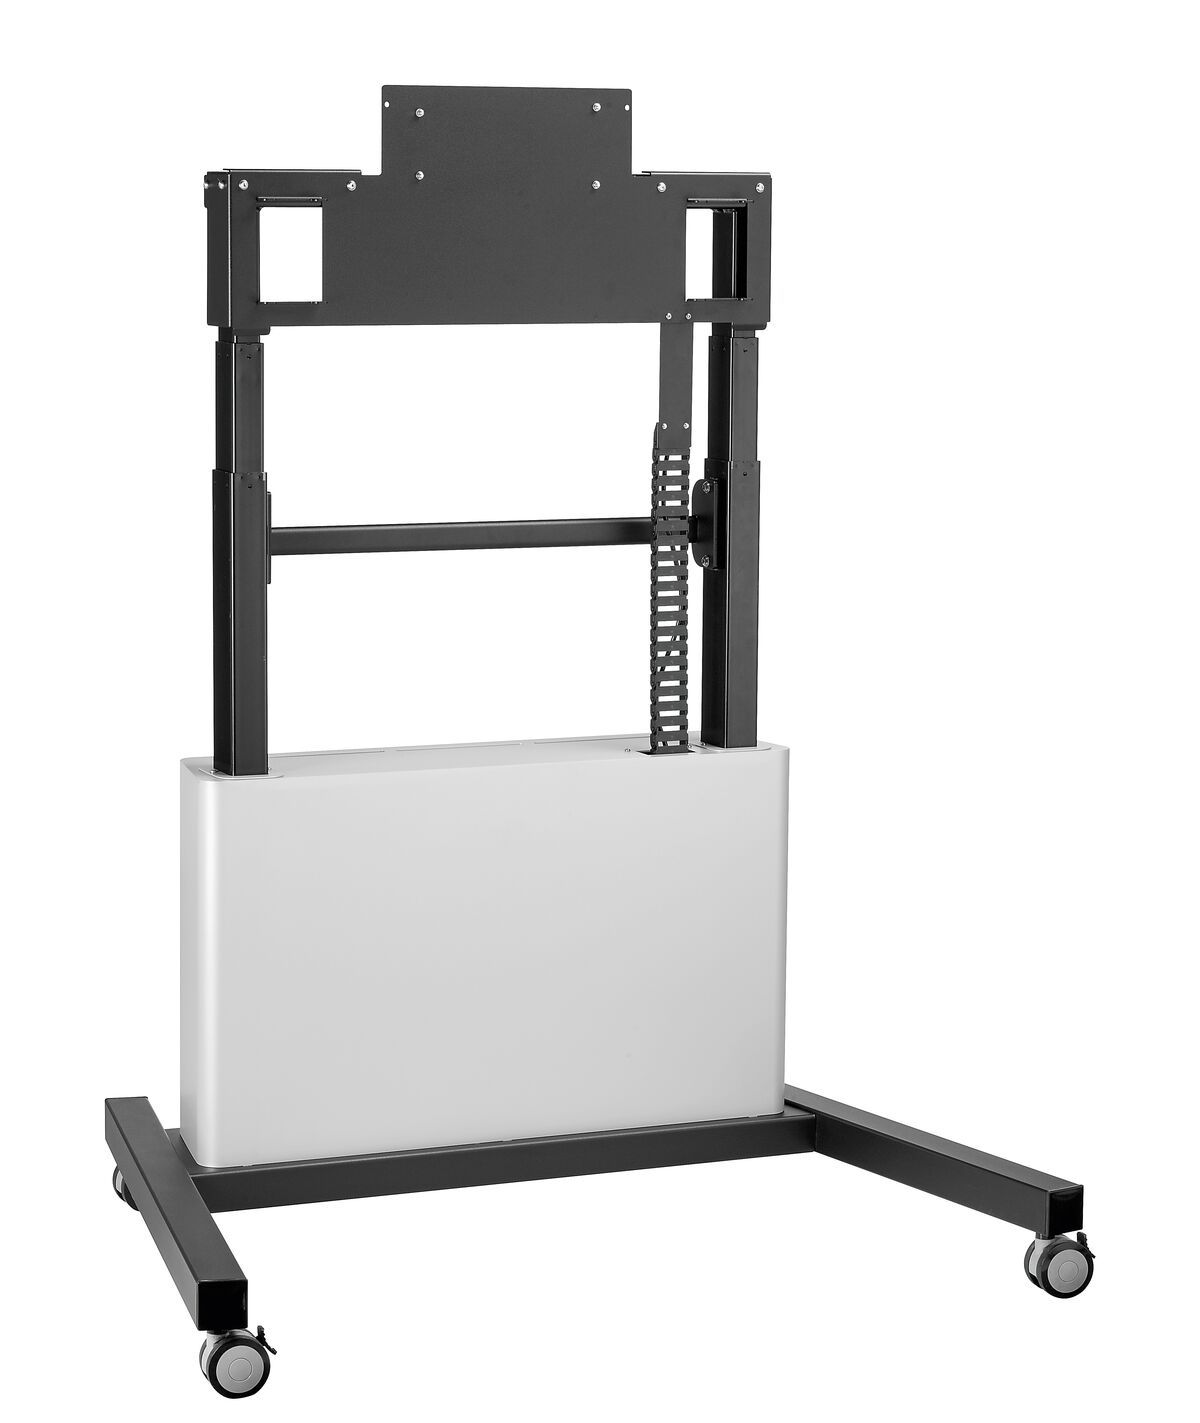 Vogel's PFTE 7111 Display trolley motorized with cabinet - Product